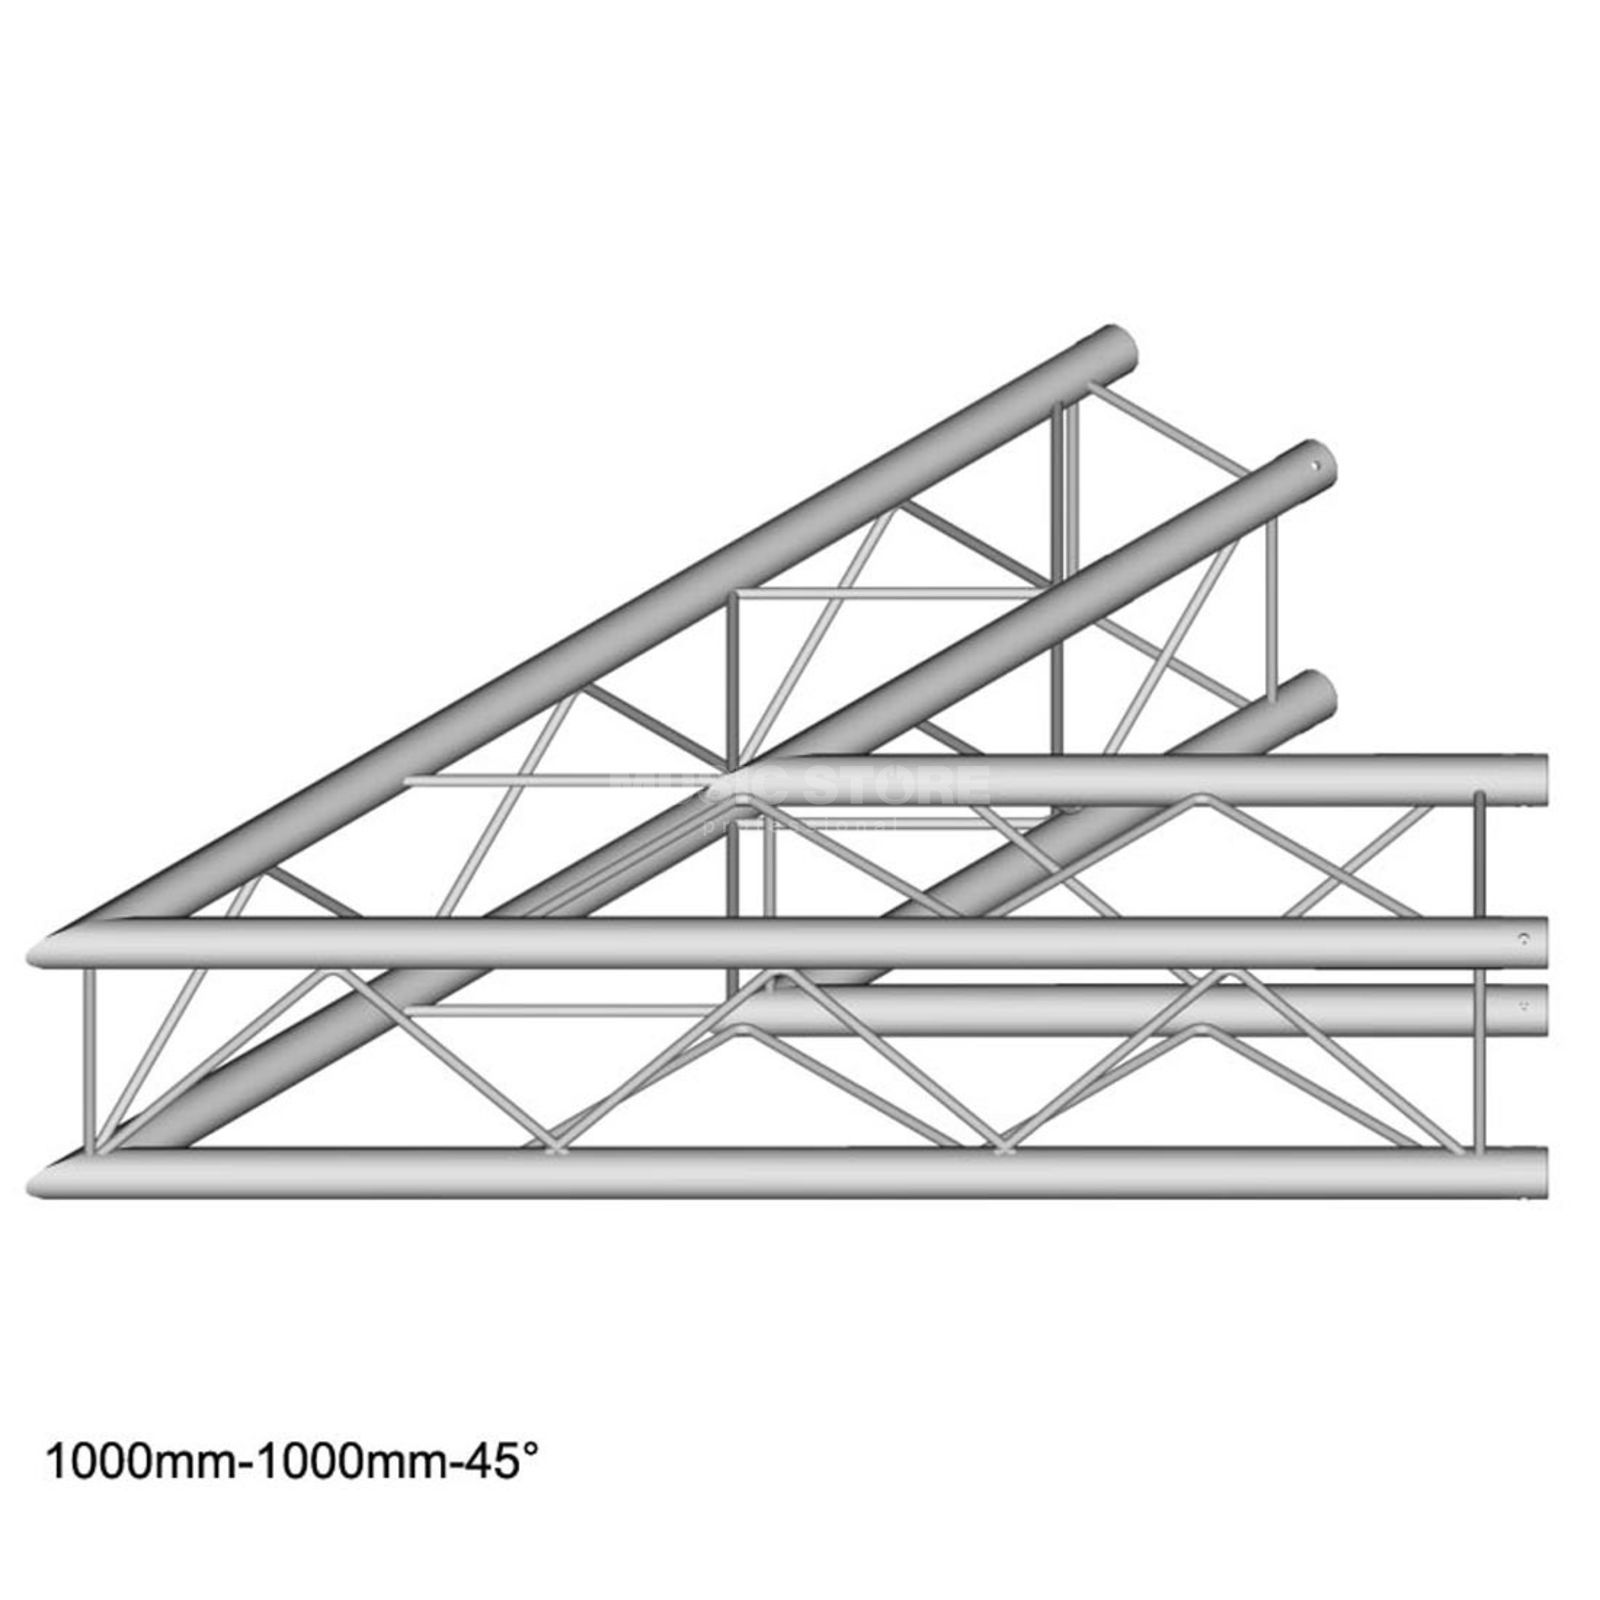 DURATRUSS DT 24 C19-L45, 4-Point Truss 45° Corner, 2-Way, 100cm Produktbillede